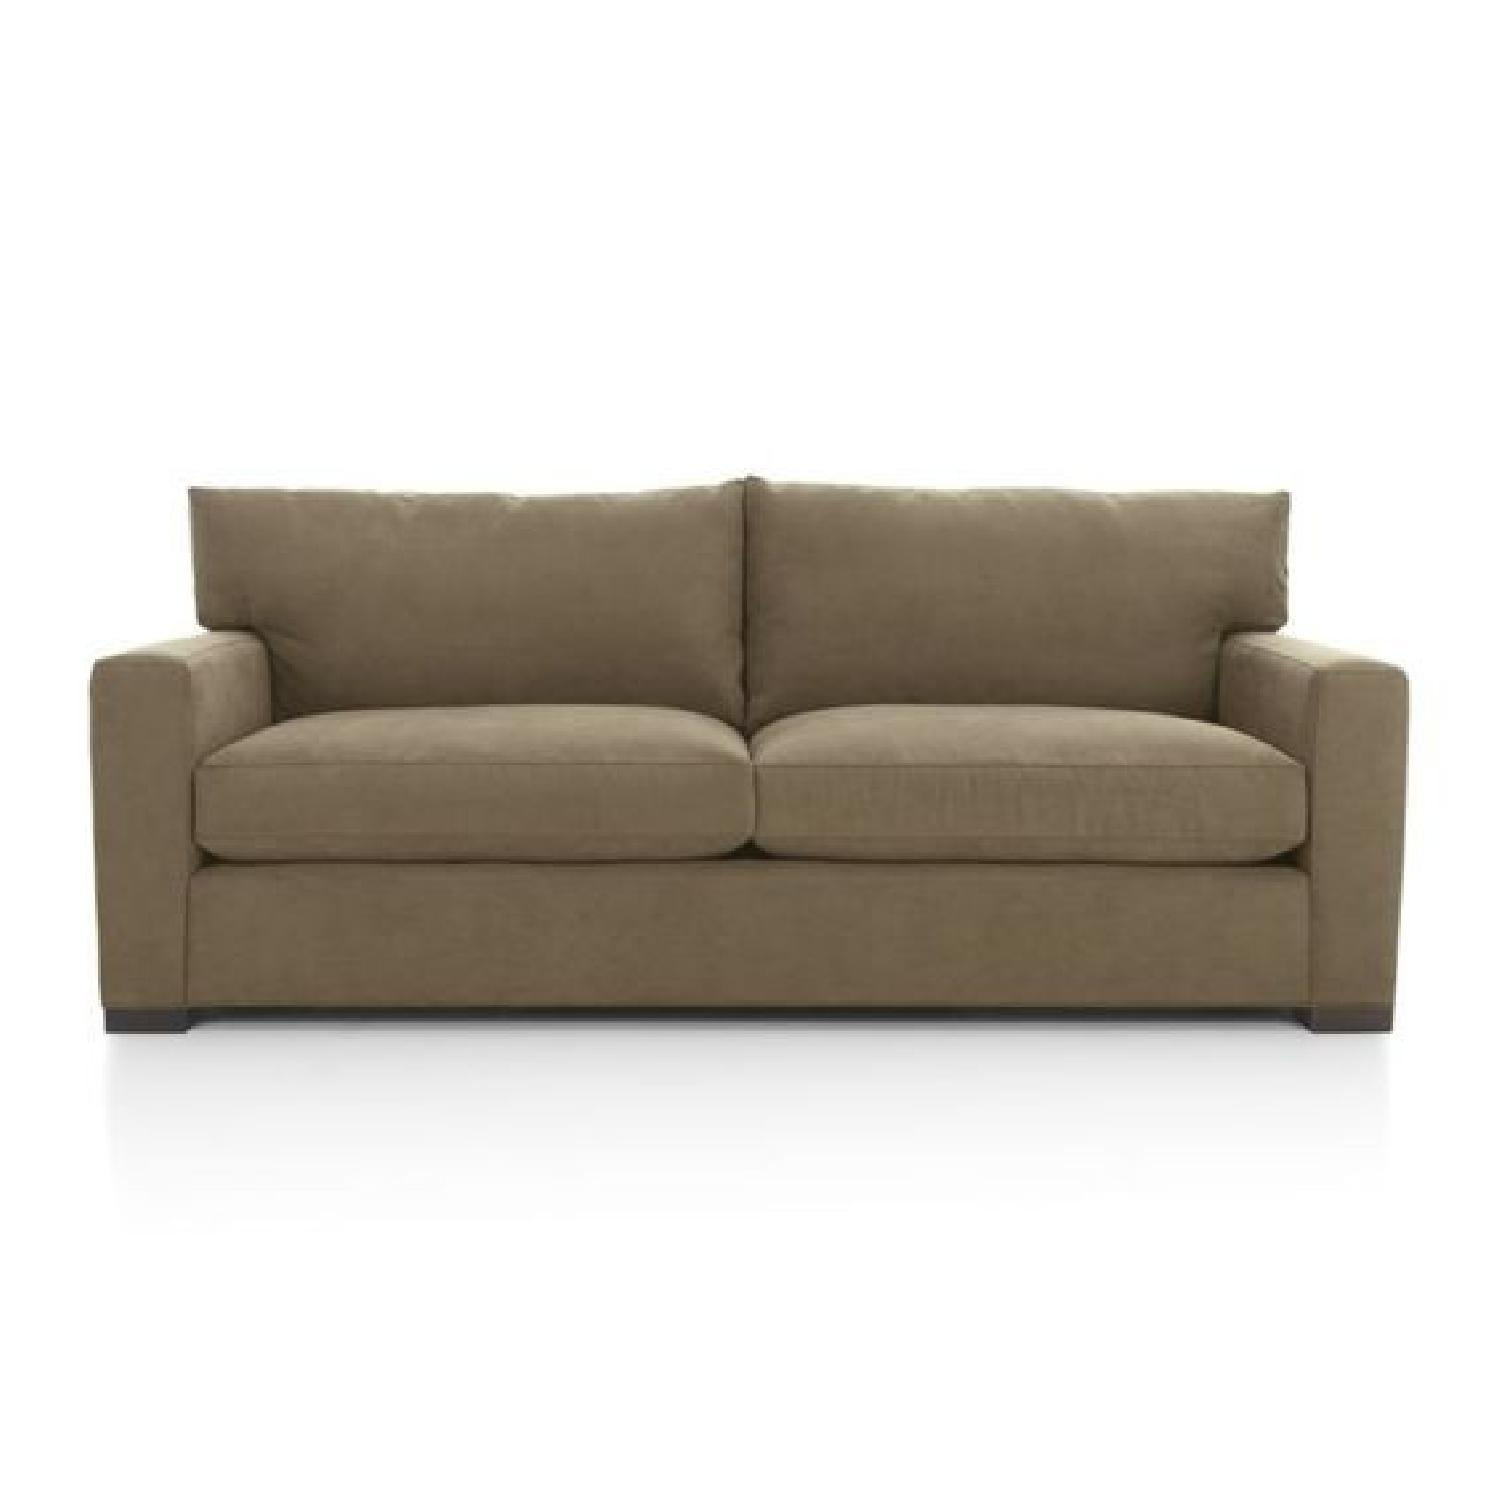 Crate & Barrel Axis II Sofa